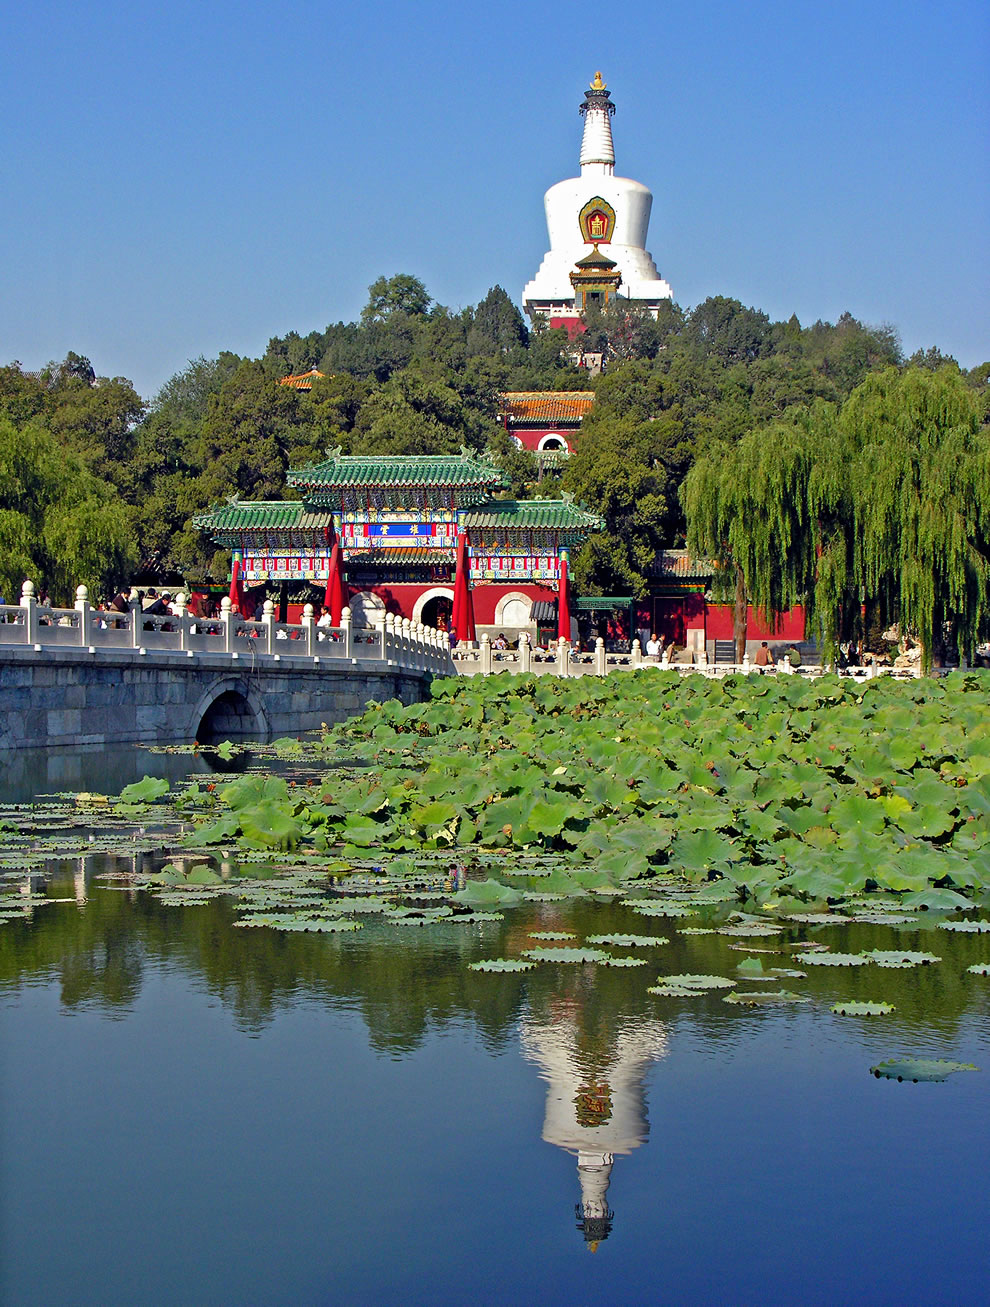 Beihai Park imperial garden in China